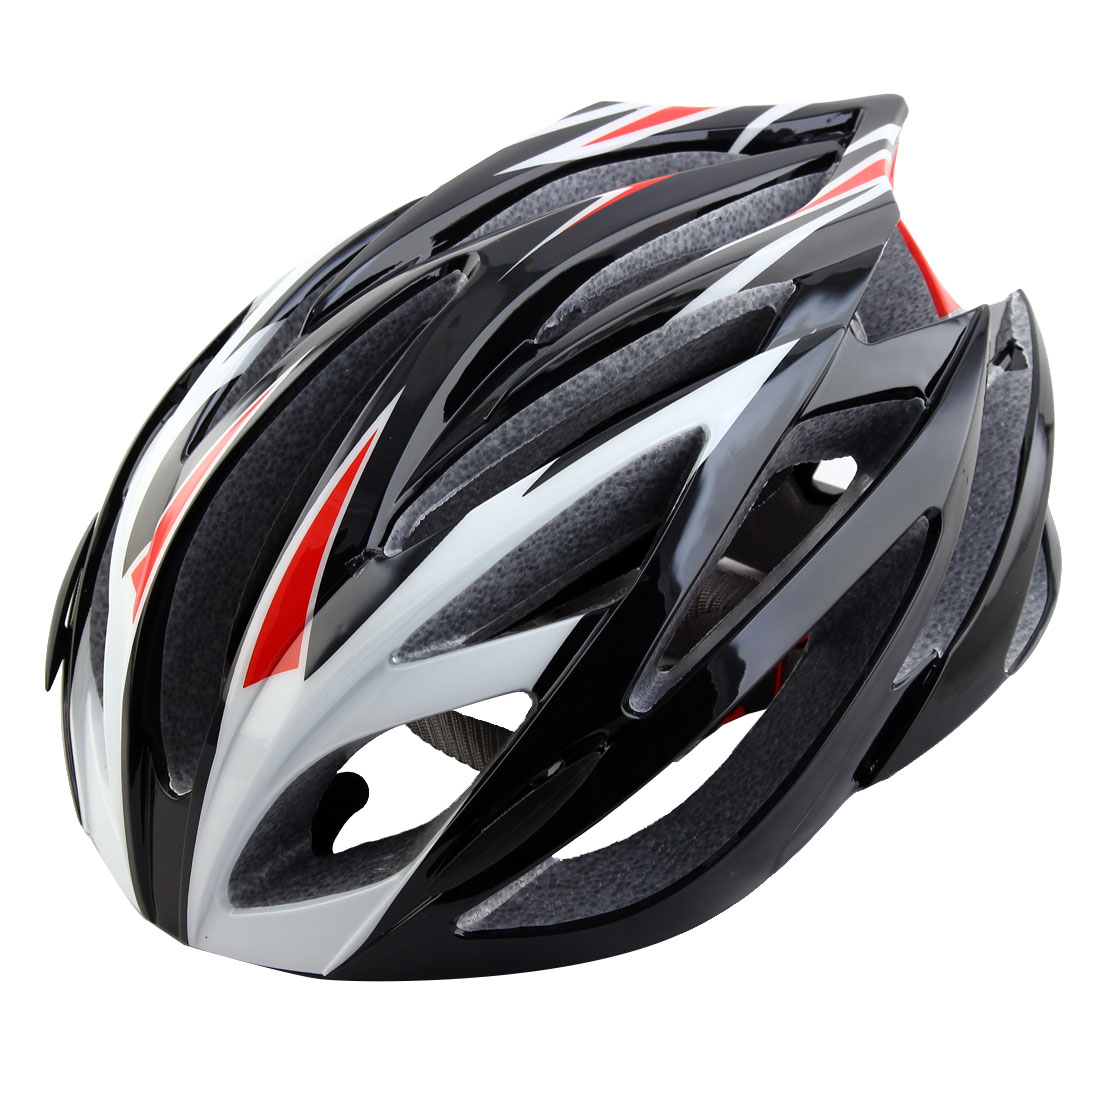 Adult Unisex Head Protector Cycling Cap Bicycle Hat Adjustable Safety Bike Helmet White